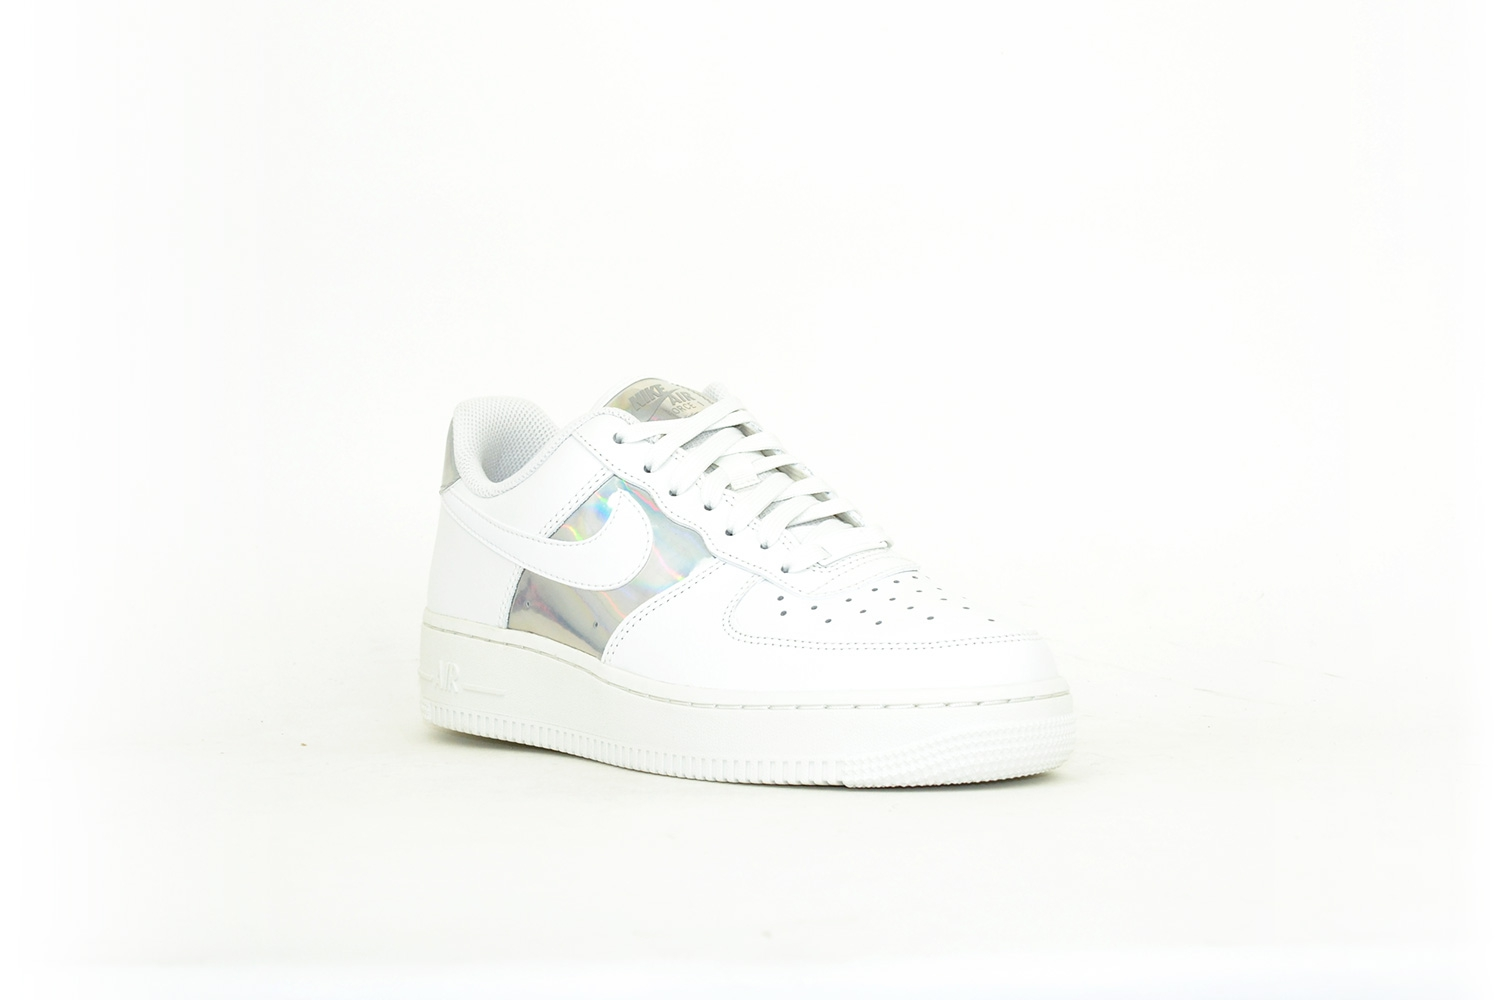 Nike Air Force 1 Low hologramm white